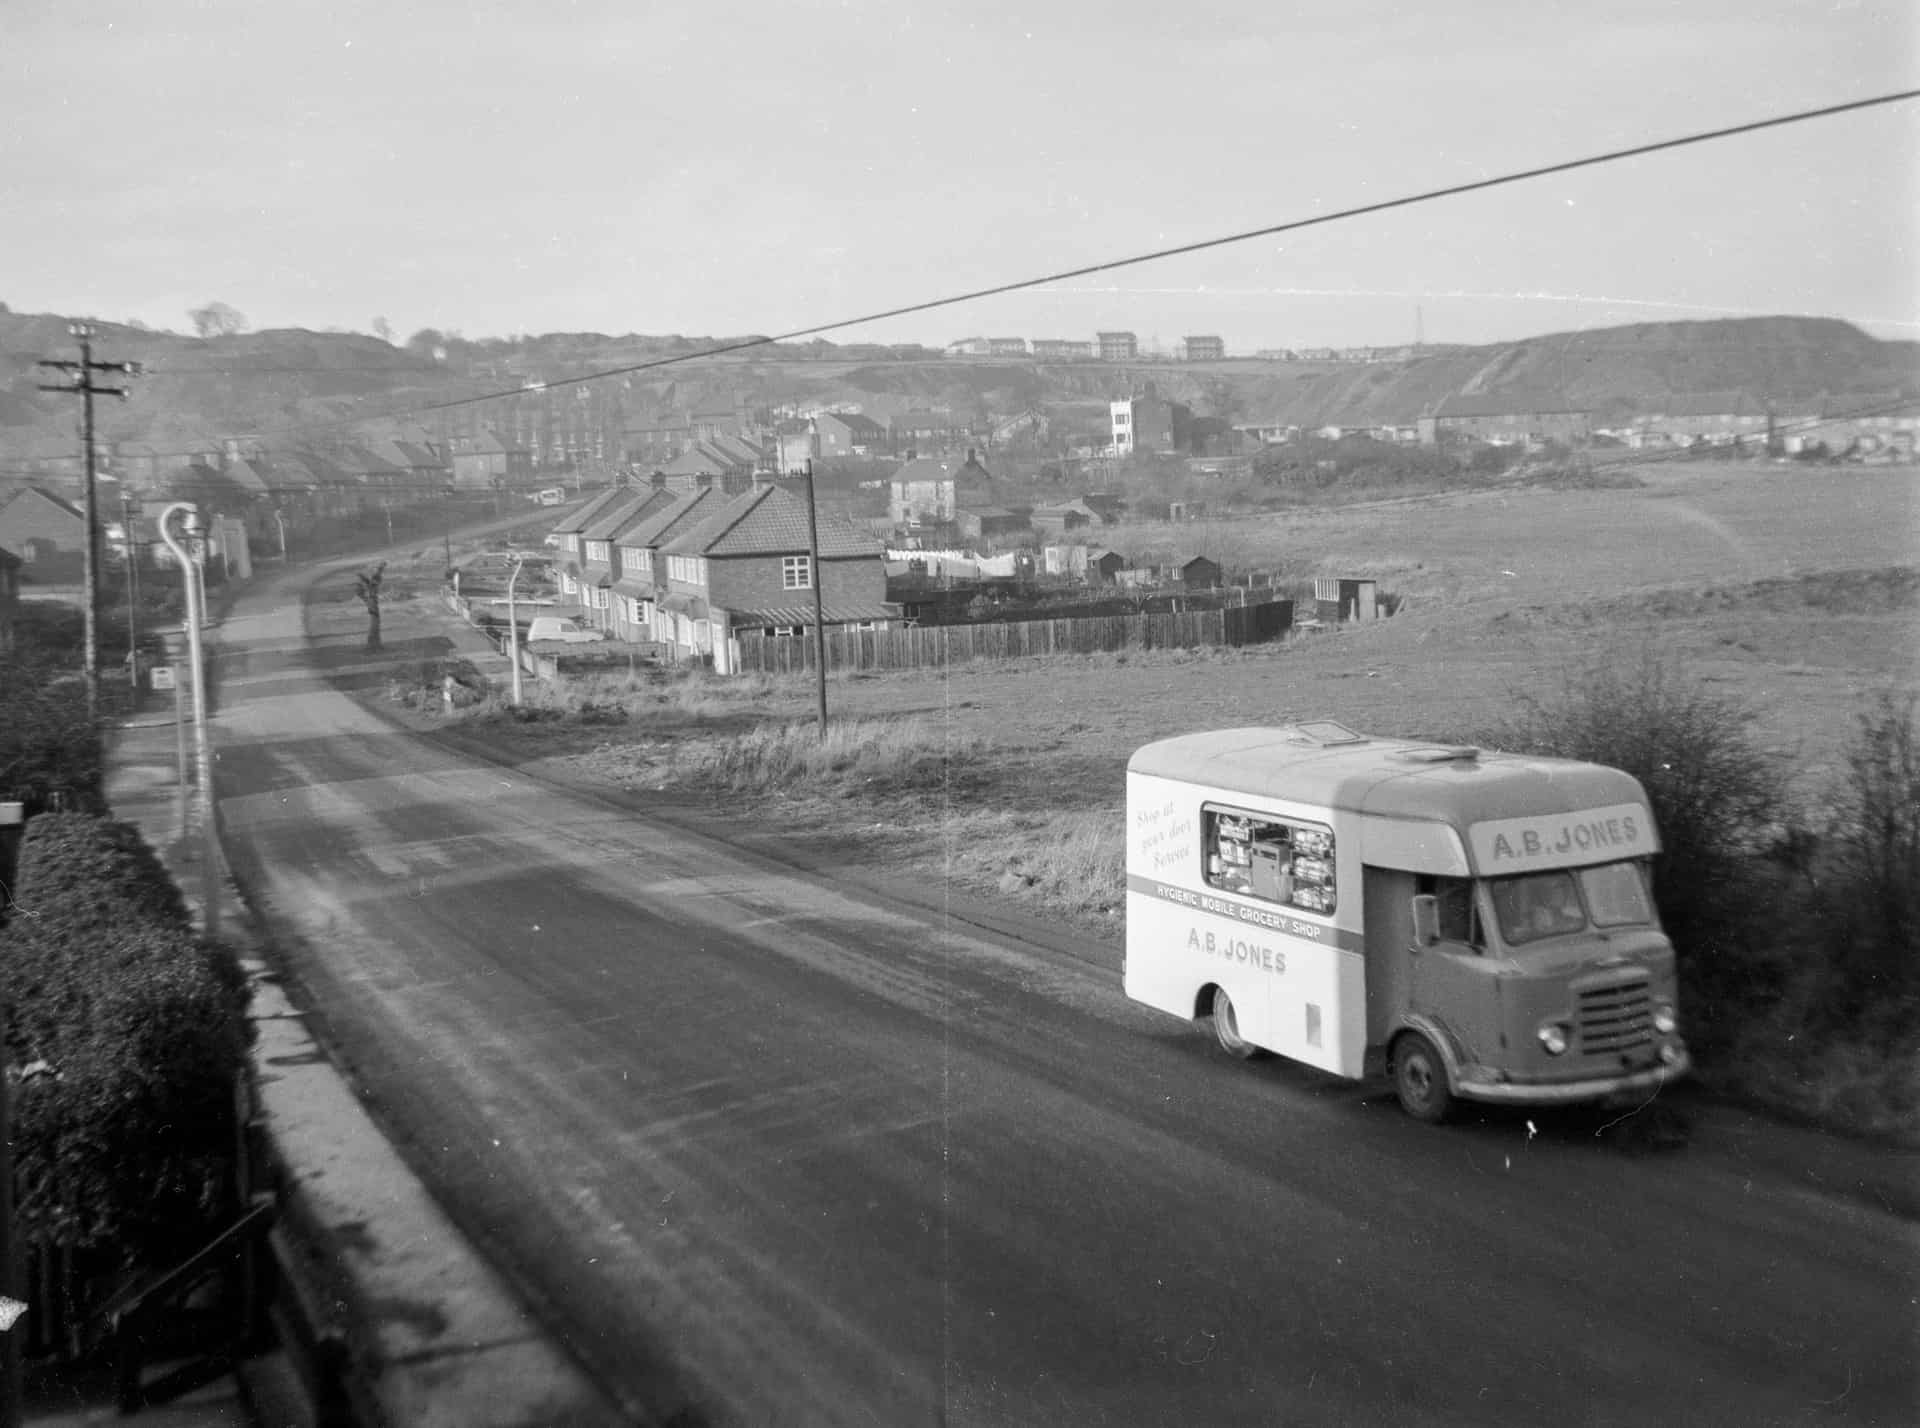 A view taken from the upstairs house in Throne Rd. The spoil heaps from the quarry workings and the outline of the Rowley Hills, the white building upper centre was the old Portway Hall. Throne Road was not yet completed and the Lion Farm buildings had not reached the farm area opposite.